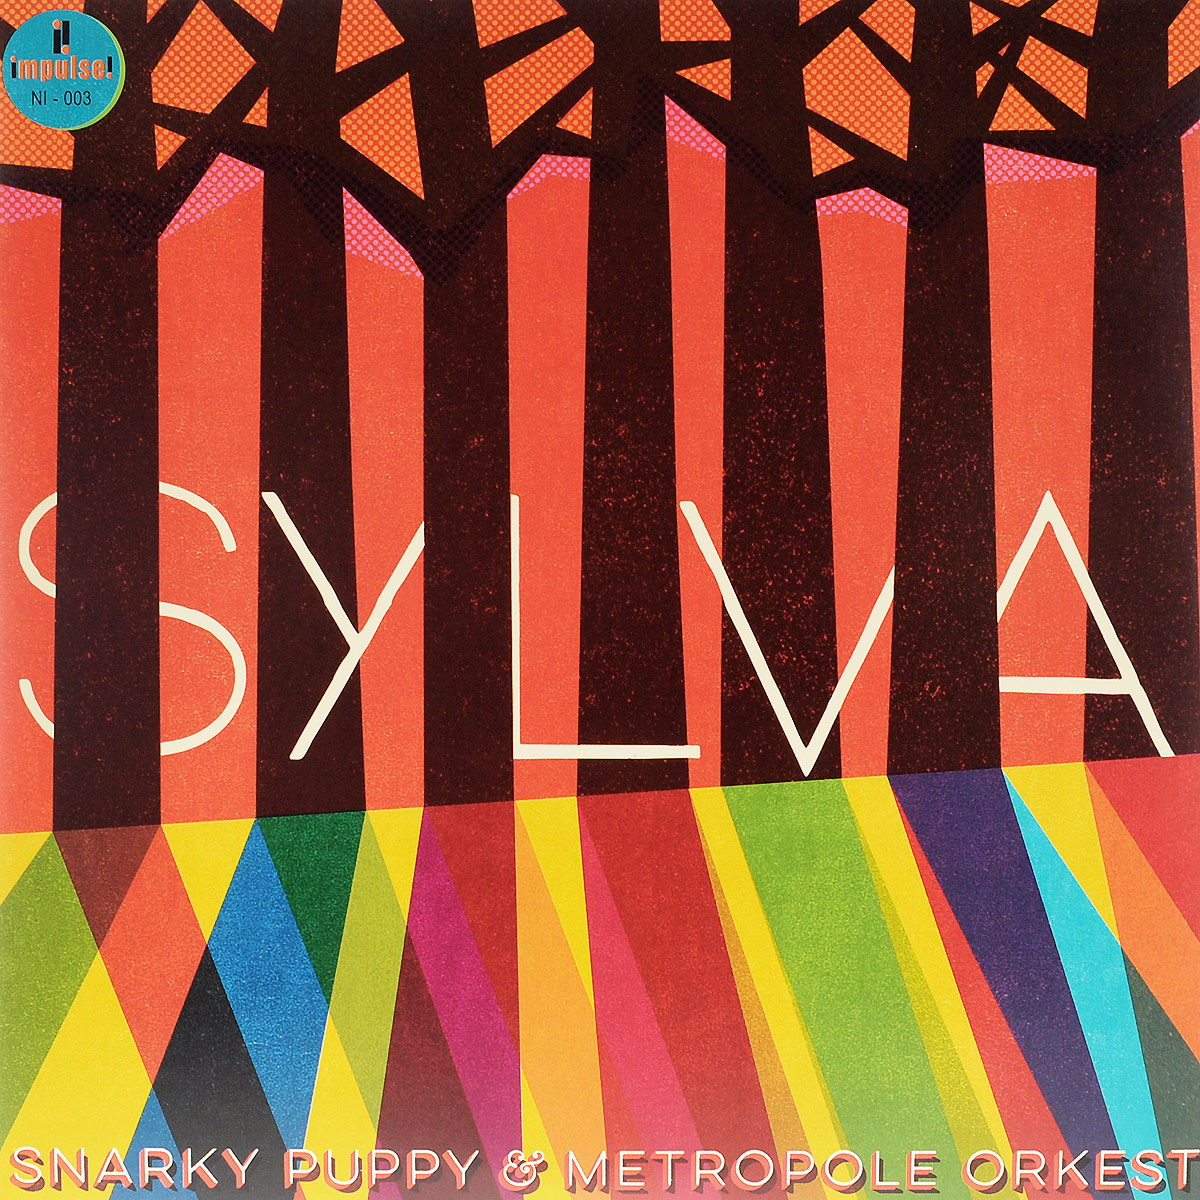 Snarky Puppy,Metropole Orchestra Snarky Puppy & Metropole Orkest. Sylva (2 LP) metropole orchestra рэнди бреккер metropole orkest better get hit in your soul a tribute to the music of charles mingus 2 cd